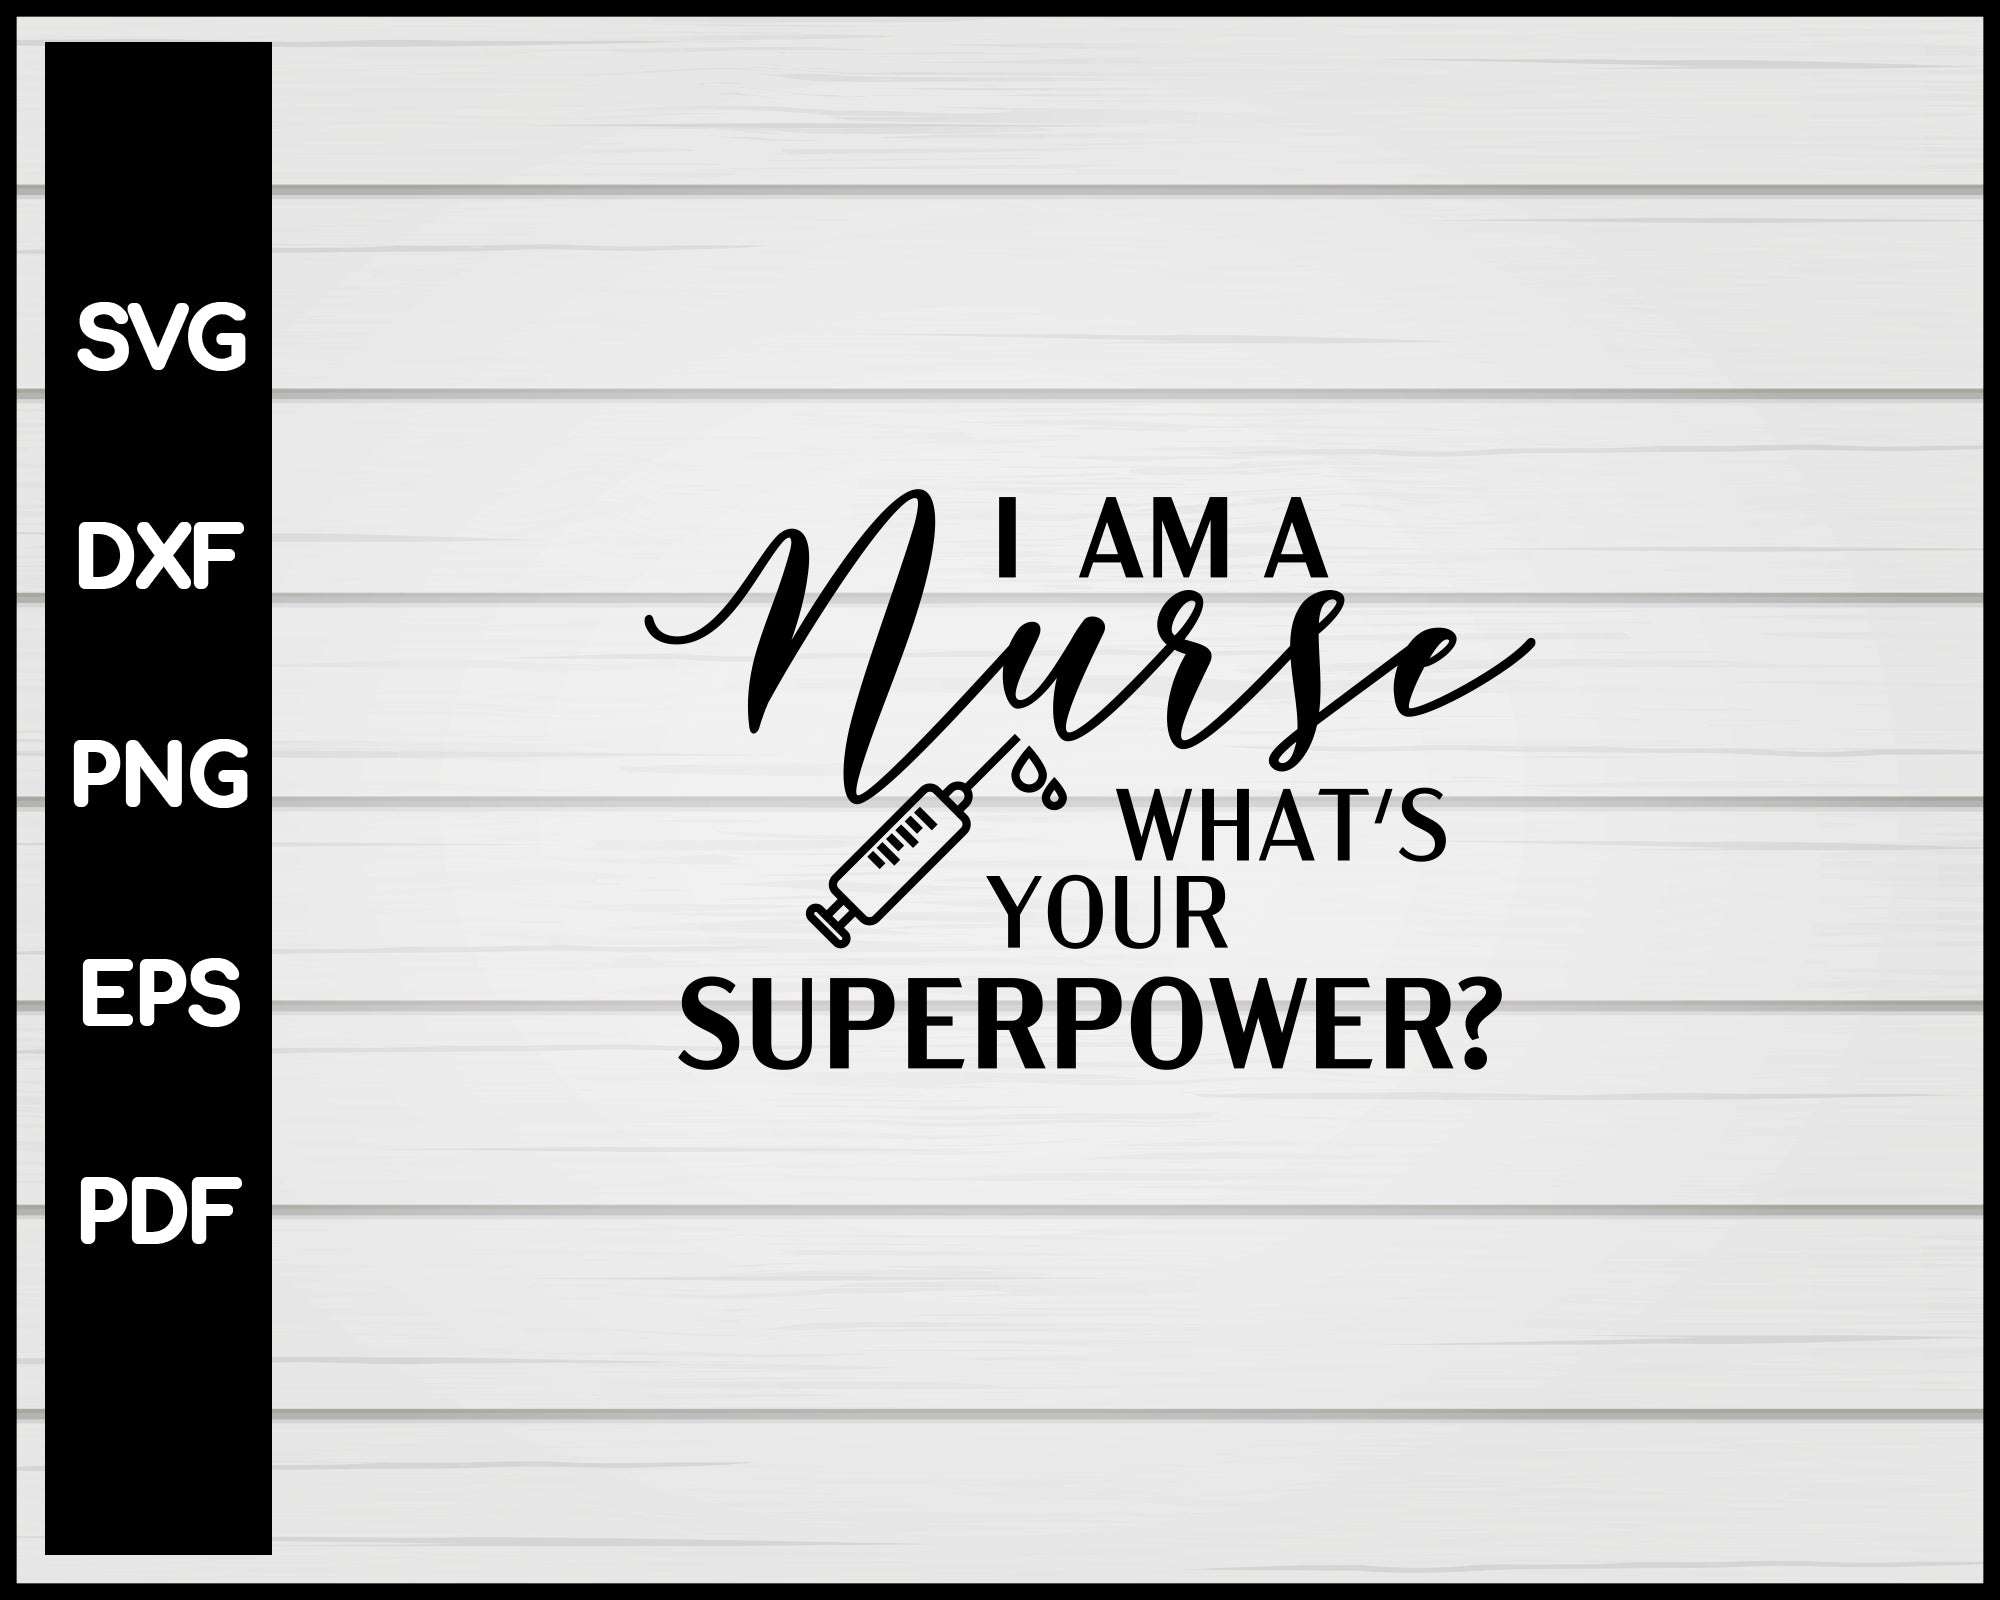 I Am A Nurse What's Your Superpower svg Cut File For Cricut Silhouette eps png dxf Printable Files